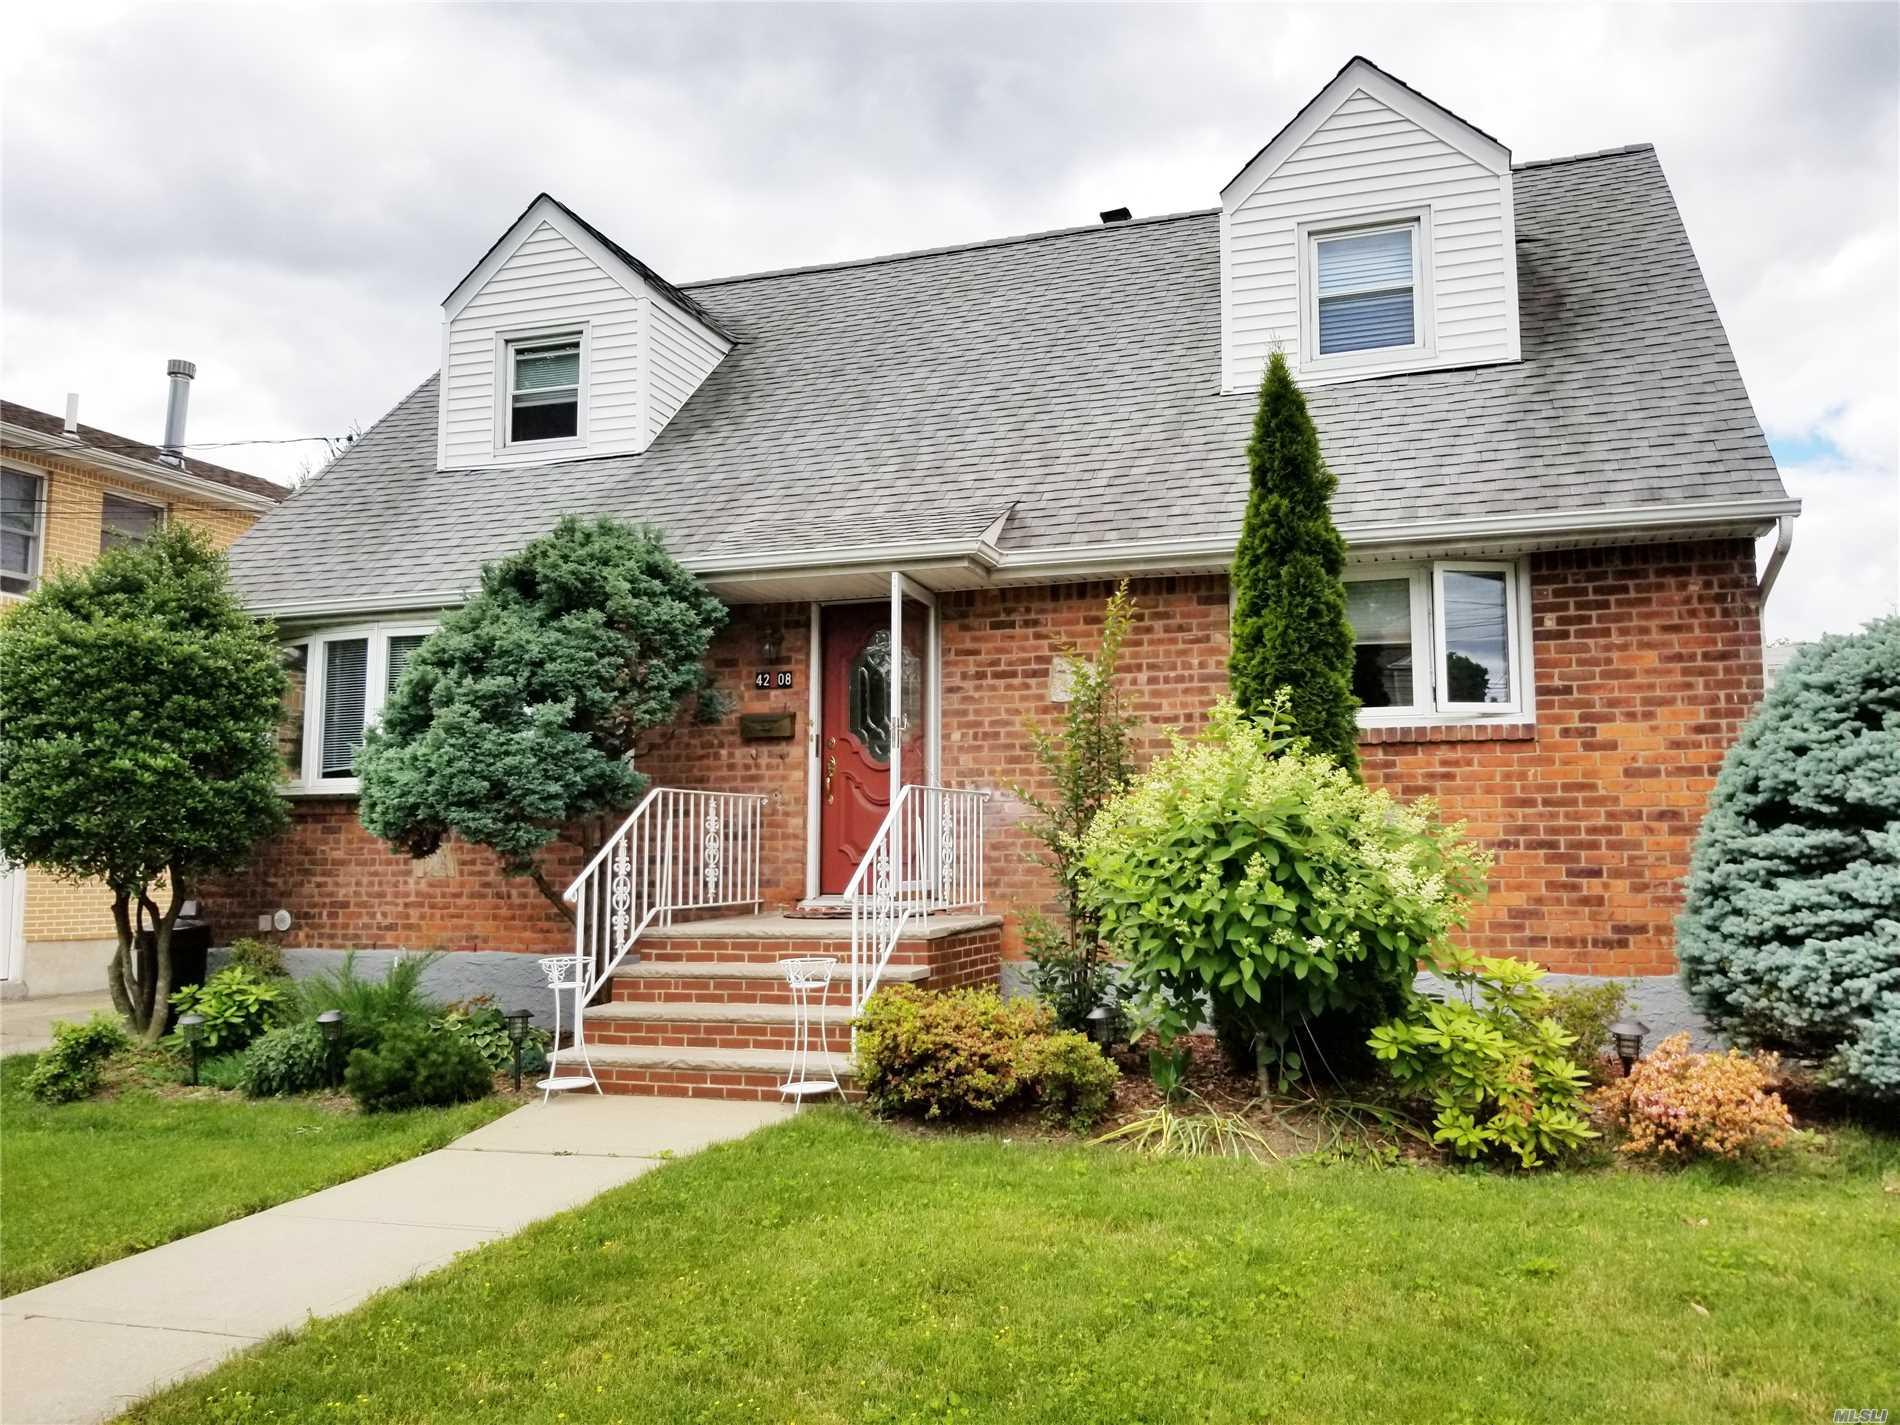 Photo of home for sale at 42-08 218 St, Bayside NY